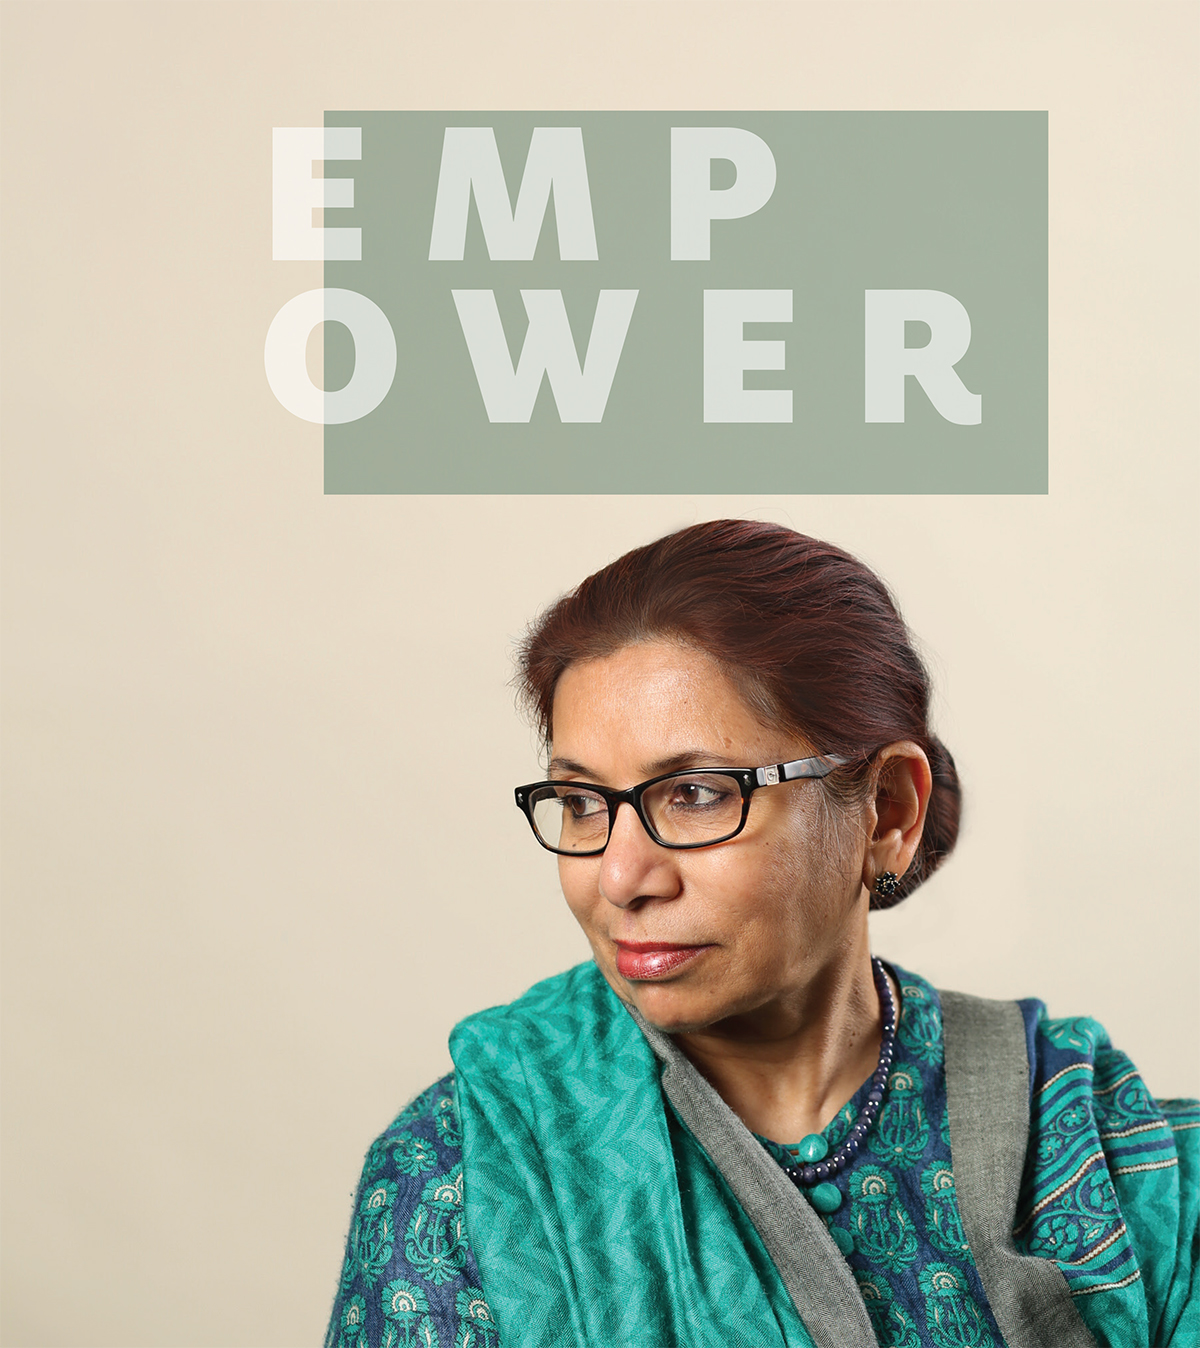 Empower. By Saleha B. Khumawala